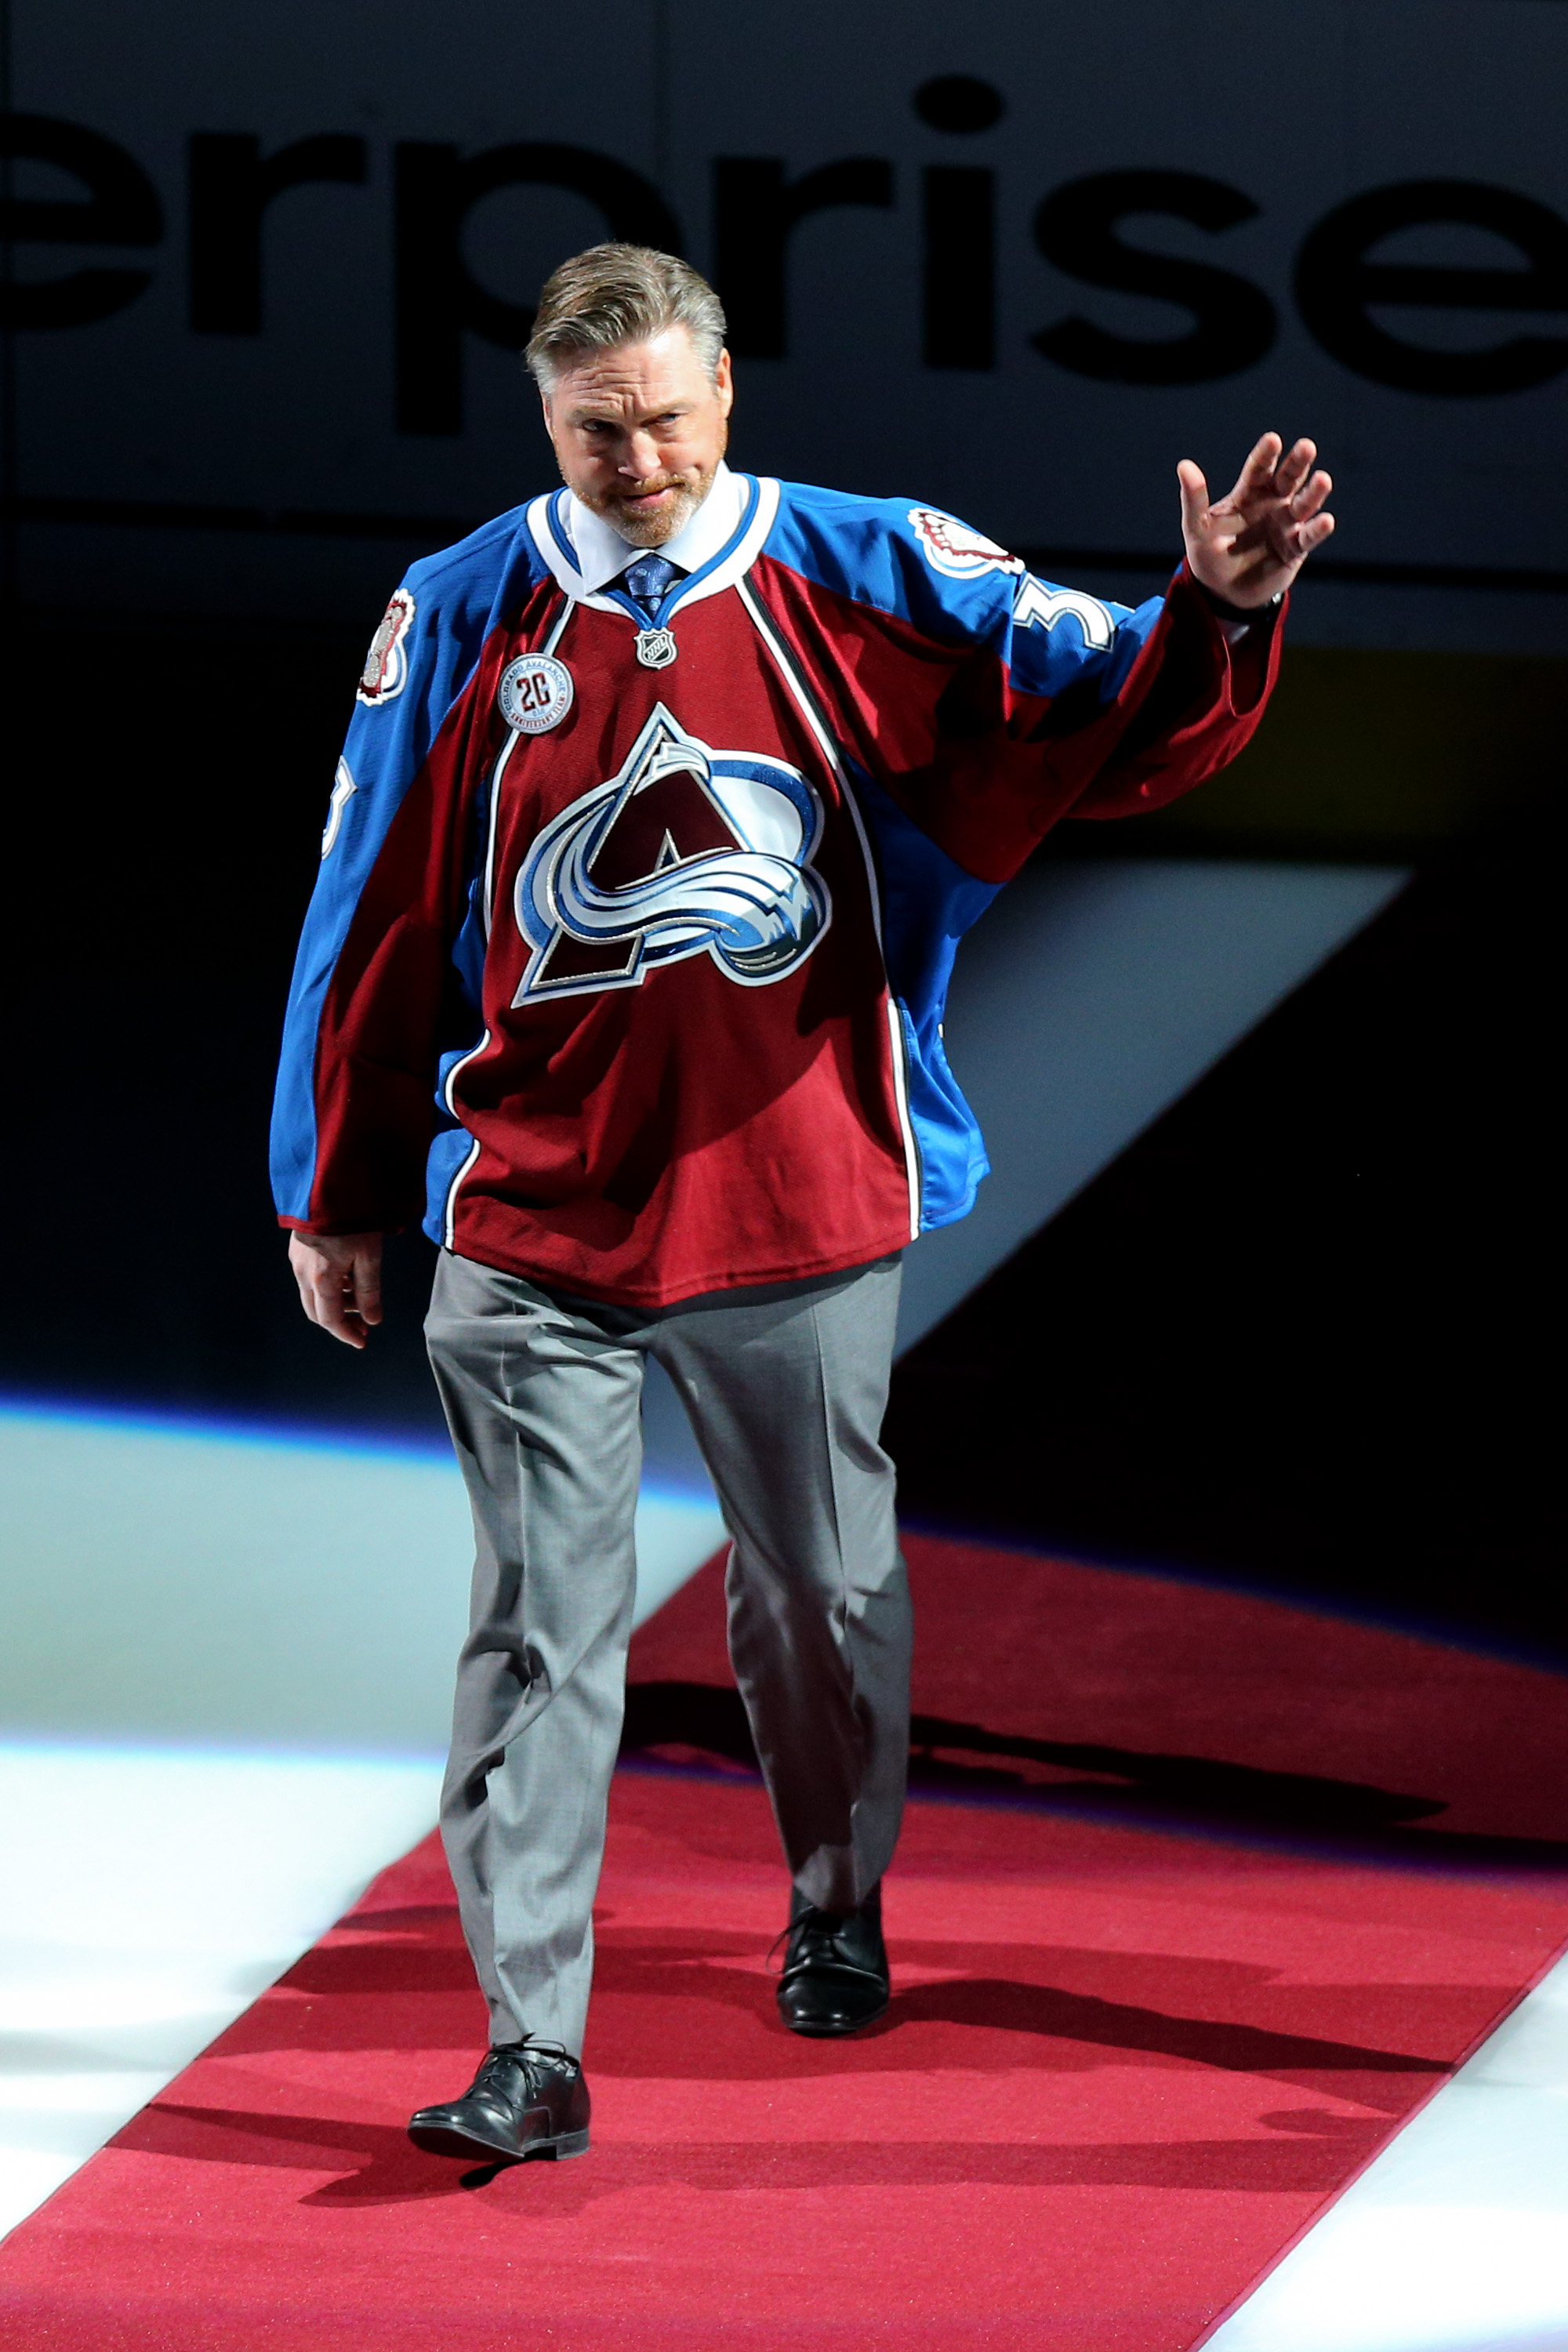 Patrick Roy of the Colorado Avalanche is introduced during a ceremony to honor the 20th Anniversary Team before a game against the Minnesota Wild at Pepsi Center on Dec. 7, 2015. (Photo by Justin Edmonds/Getty Images)